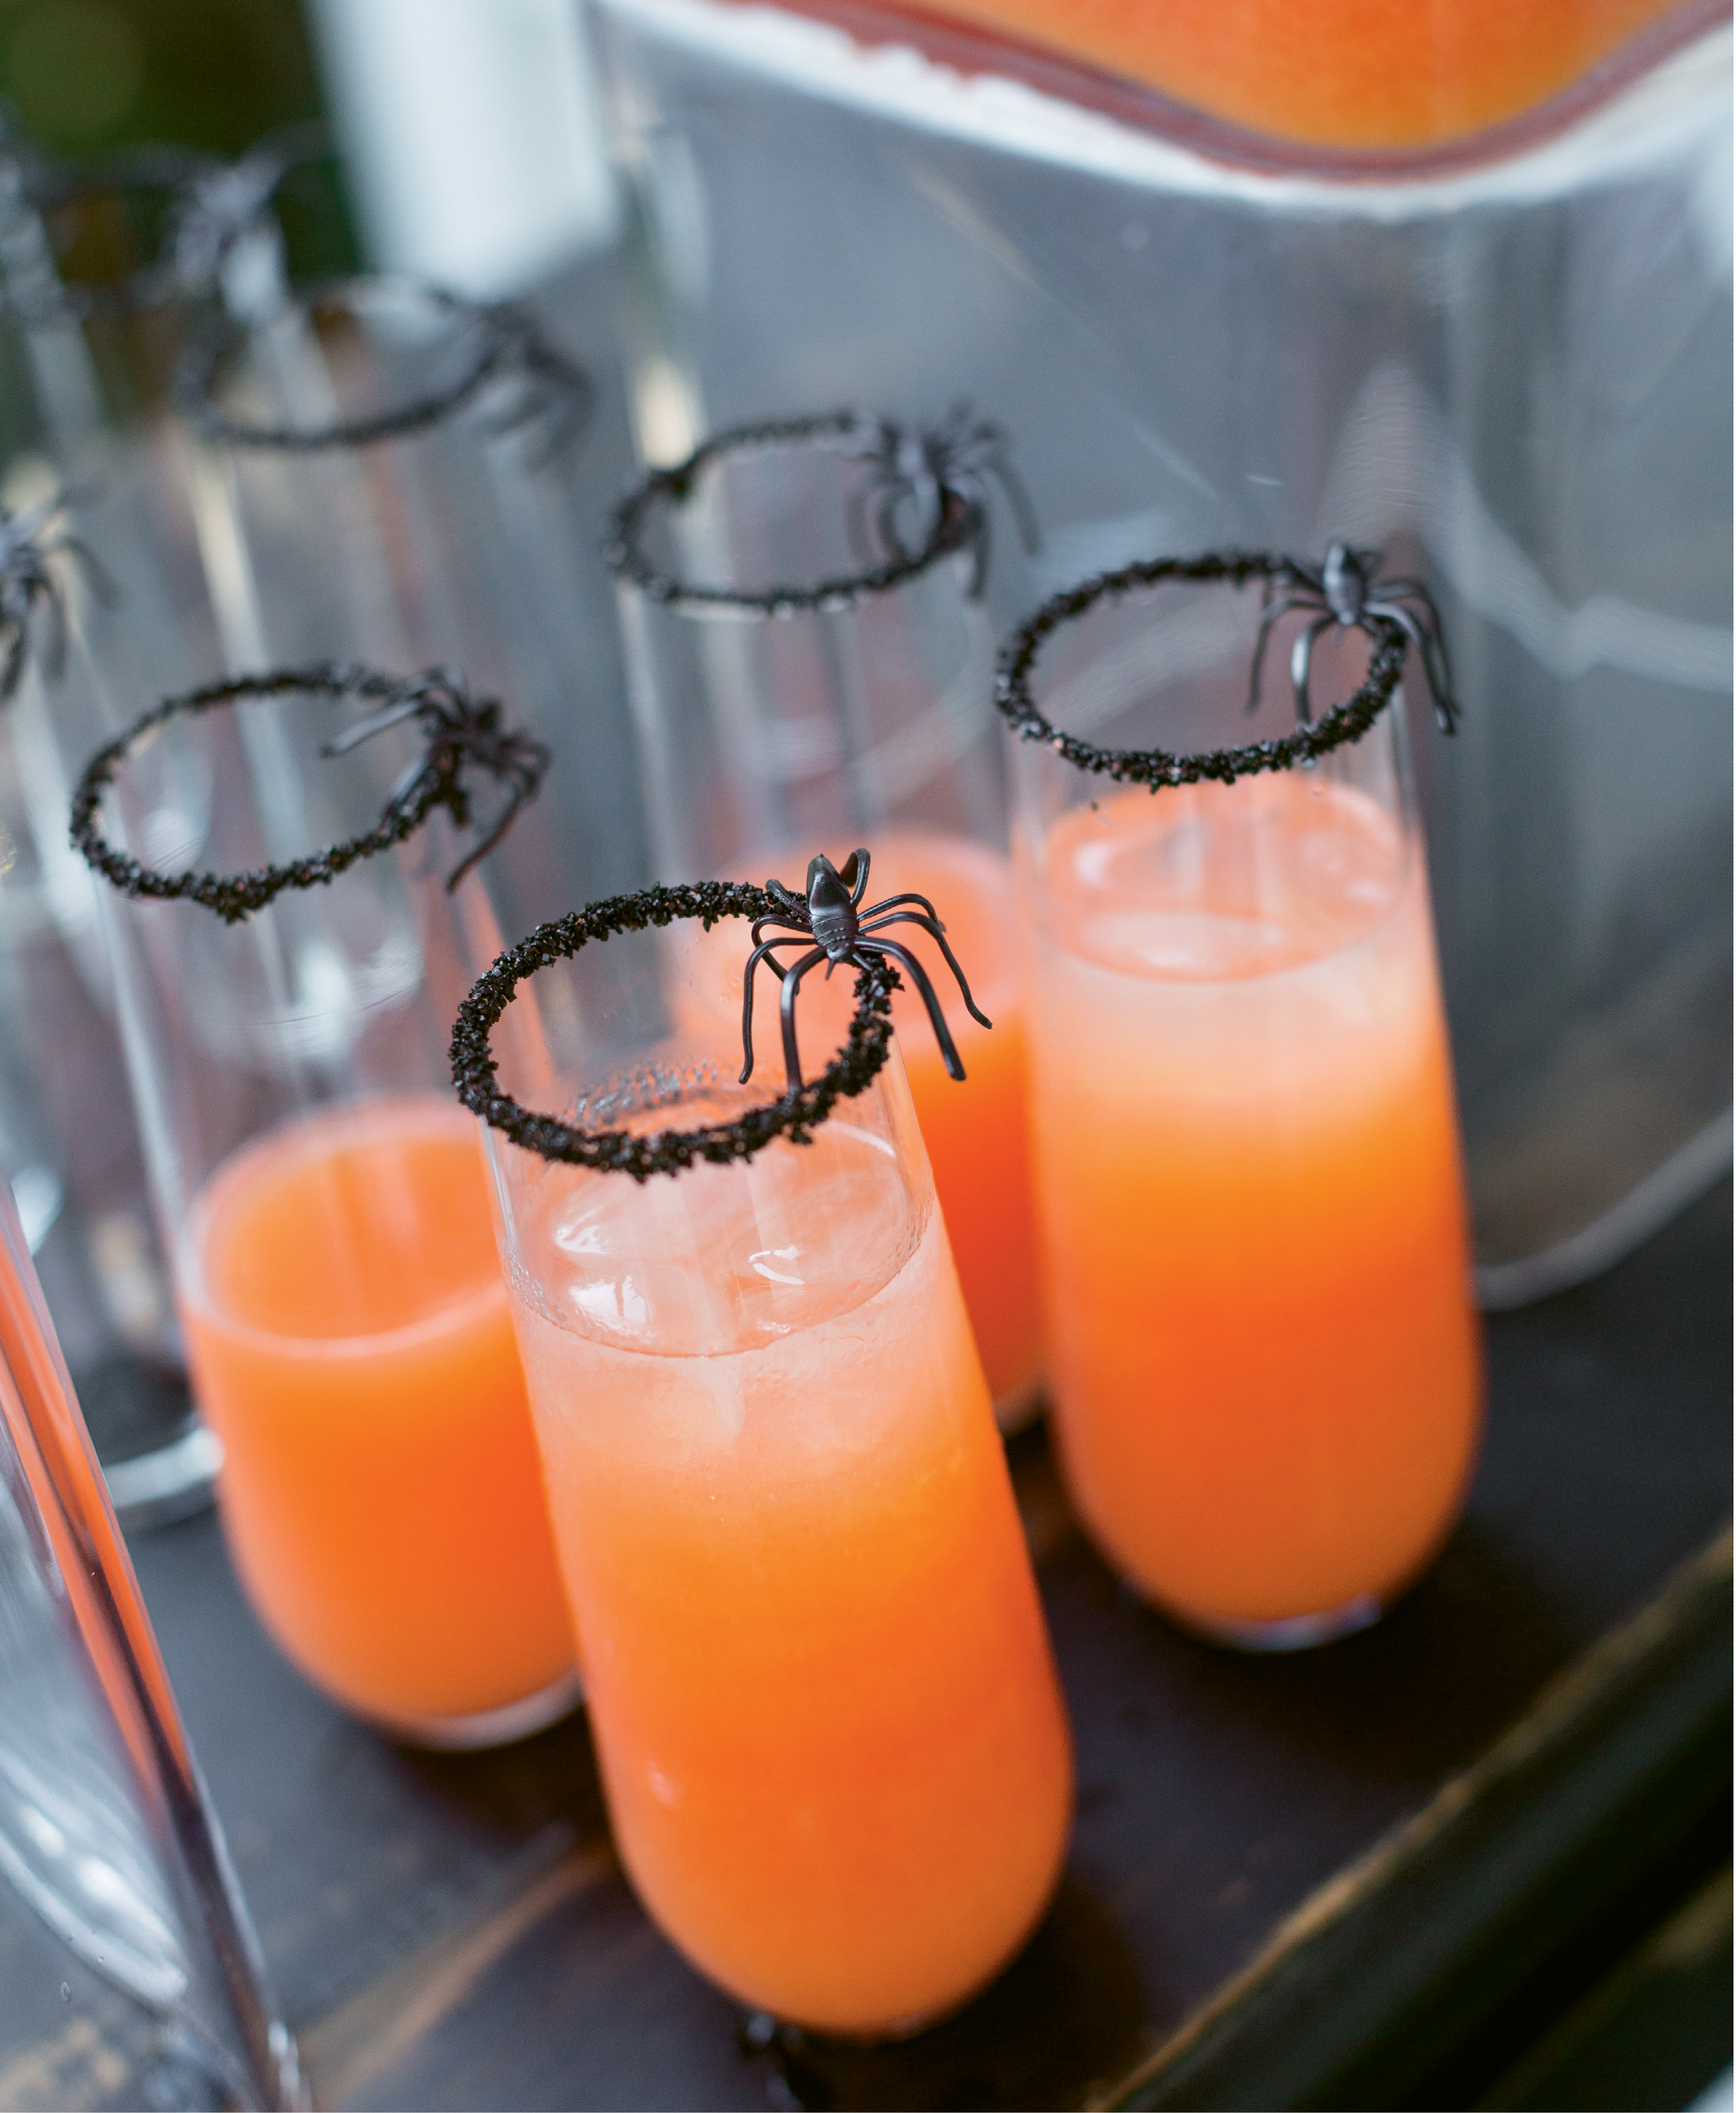 Batch's Spicy Bloody Orange Margarita recipe